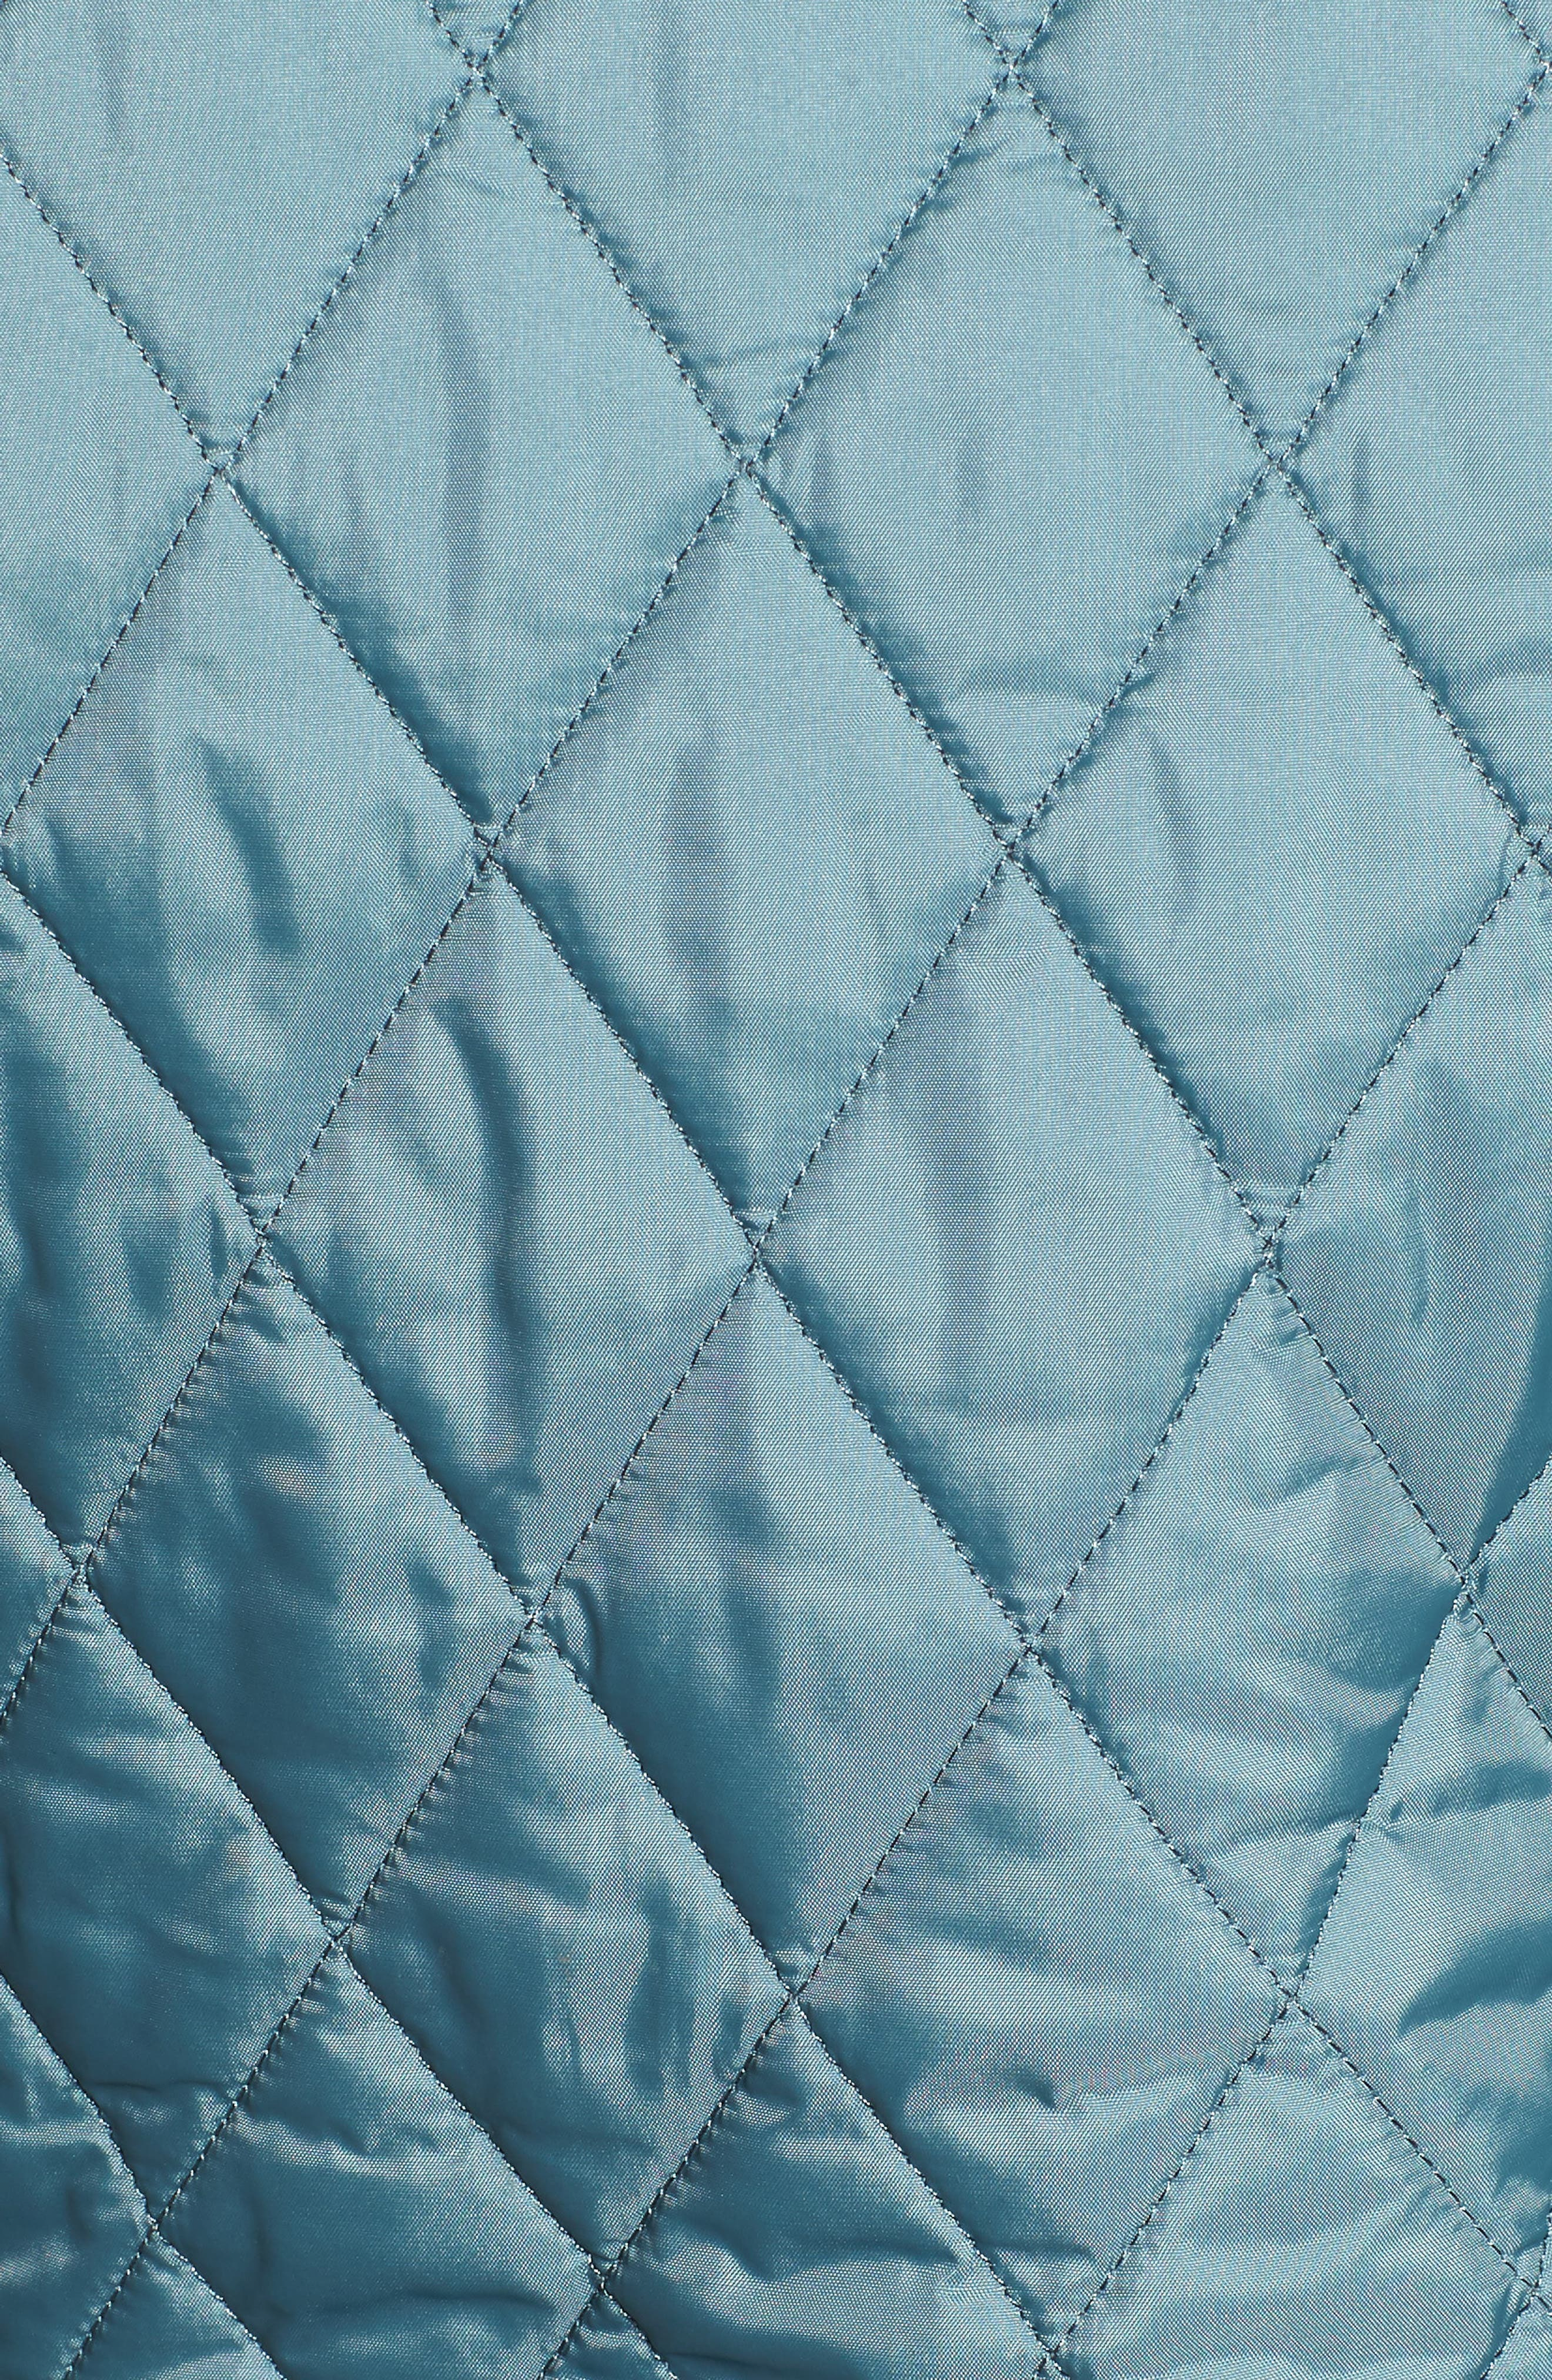 Annandale Quilted Jacket,                             Alternate thumbnail 7, color,                             EUCALYPTUS